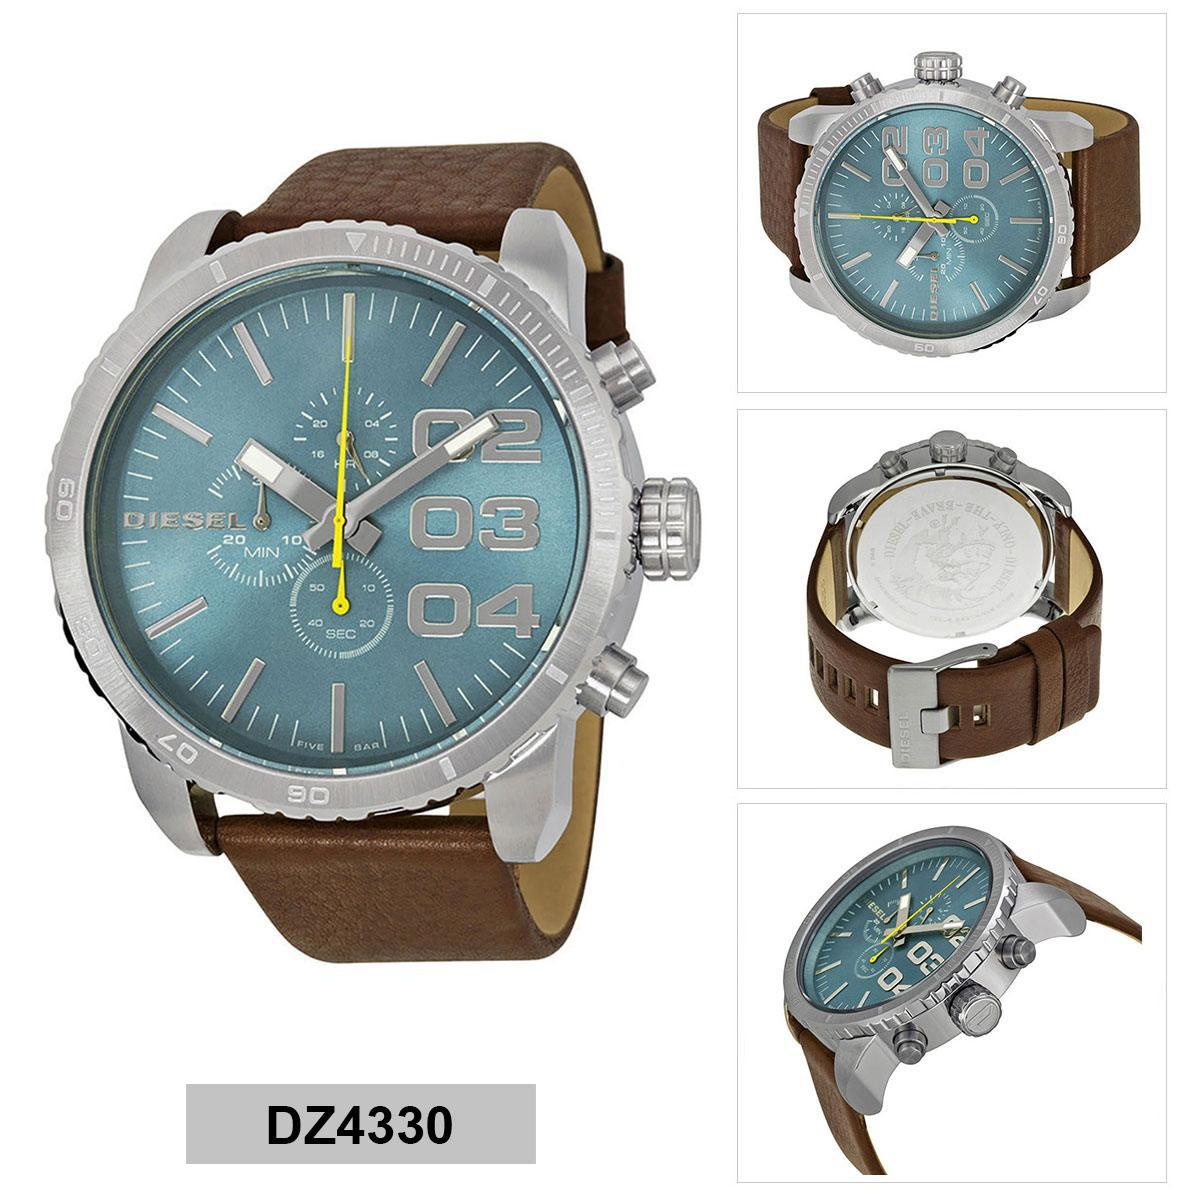 สอนใช้งาน  ตรัง Authentic Diesel Brown Stainless-Steel Case Leather Strap Mens DZ4330 2 Years Warranty